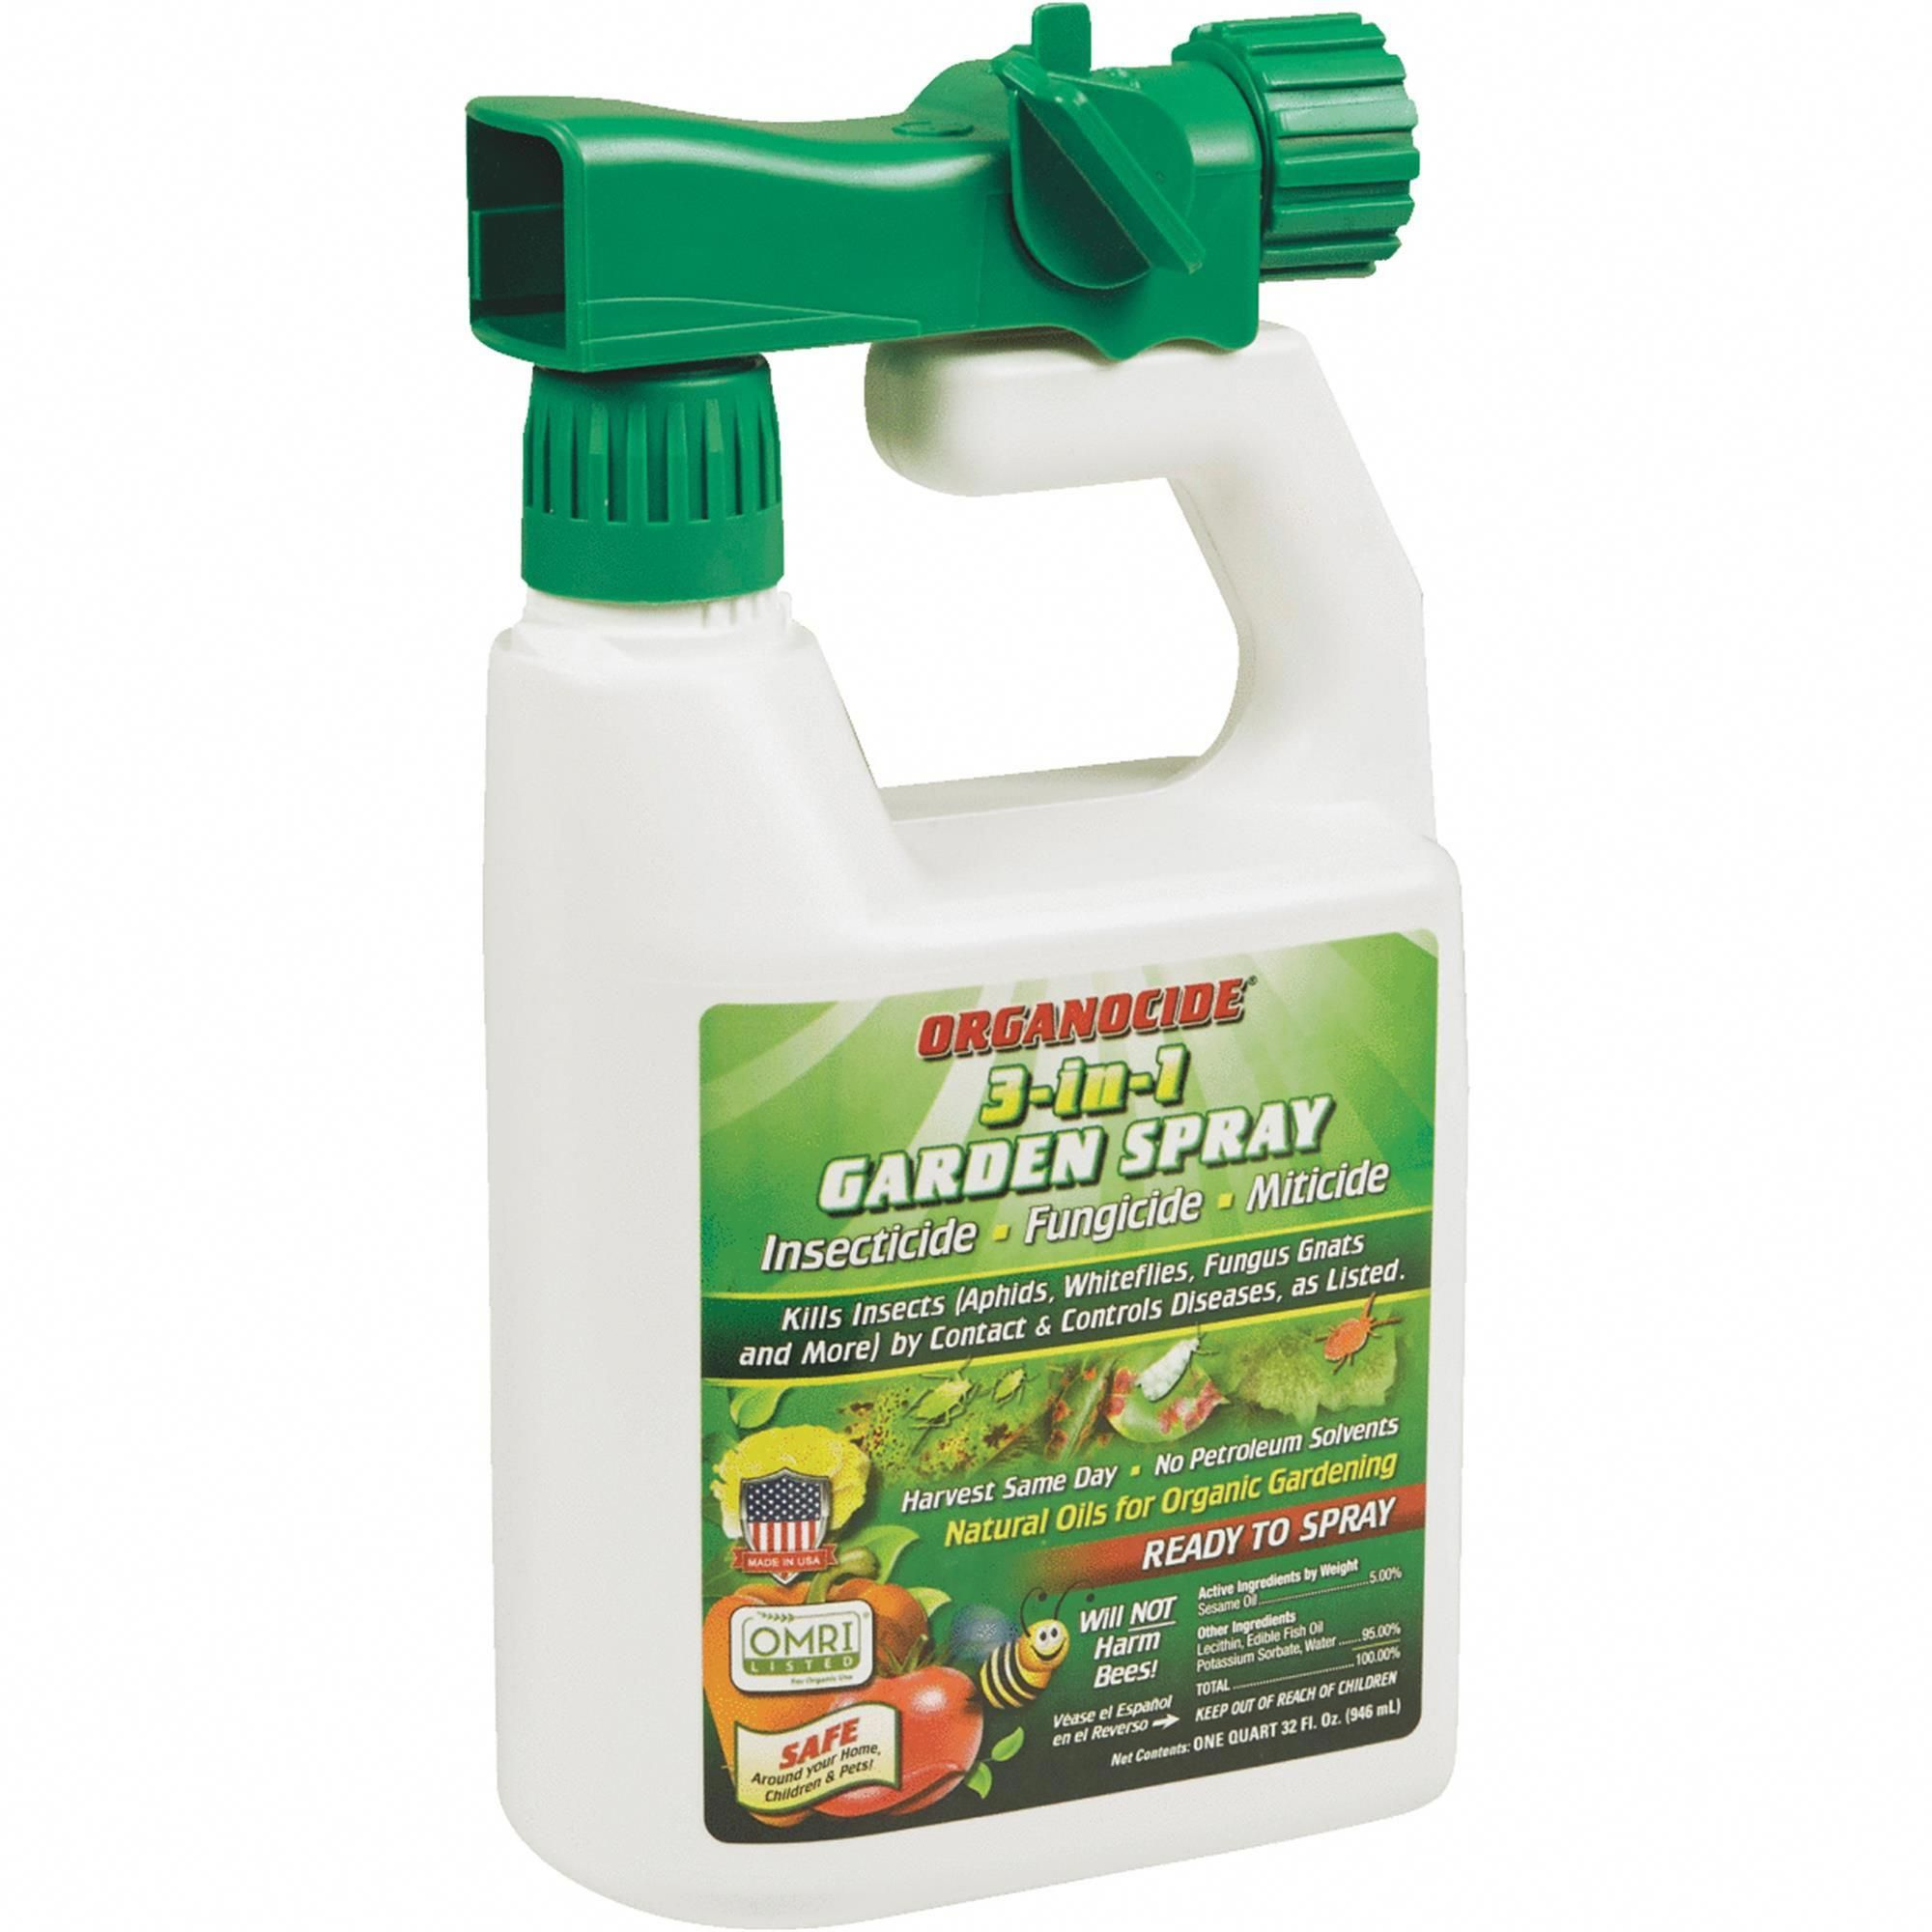 5338097d2b95f311572c42d8dac69c71 - Is Terro Safe For Vegetable Gardens